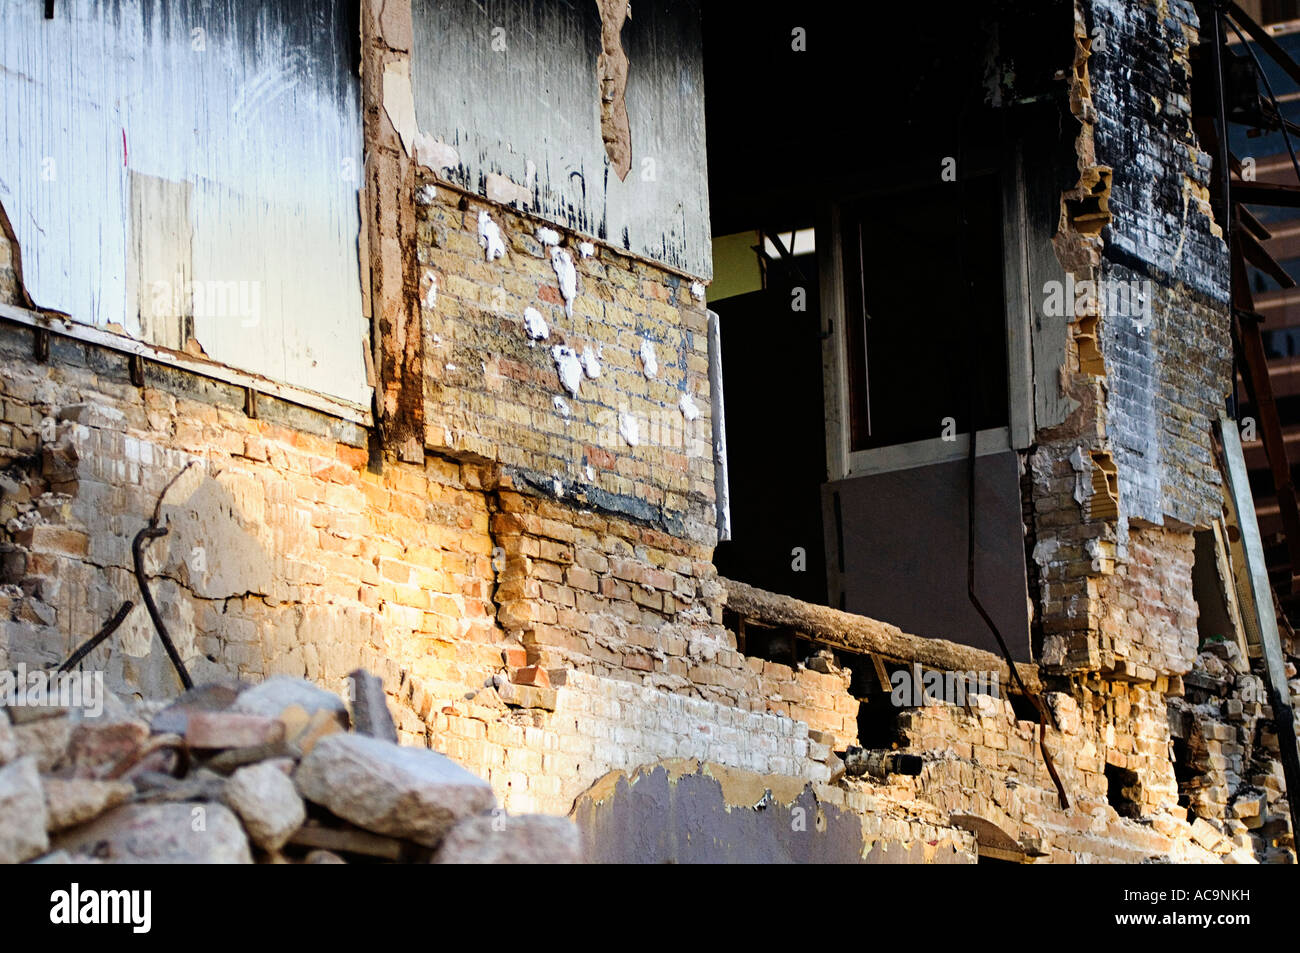 Building Partially Demolished After Fire - Stock Image